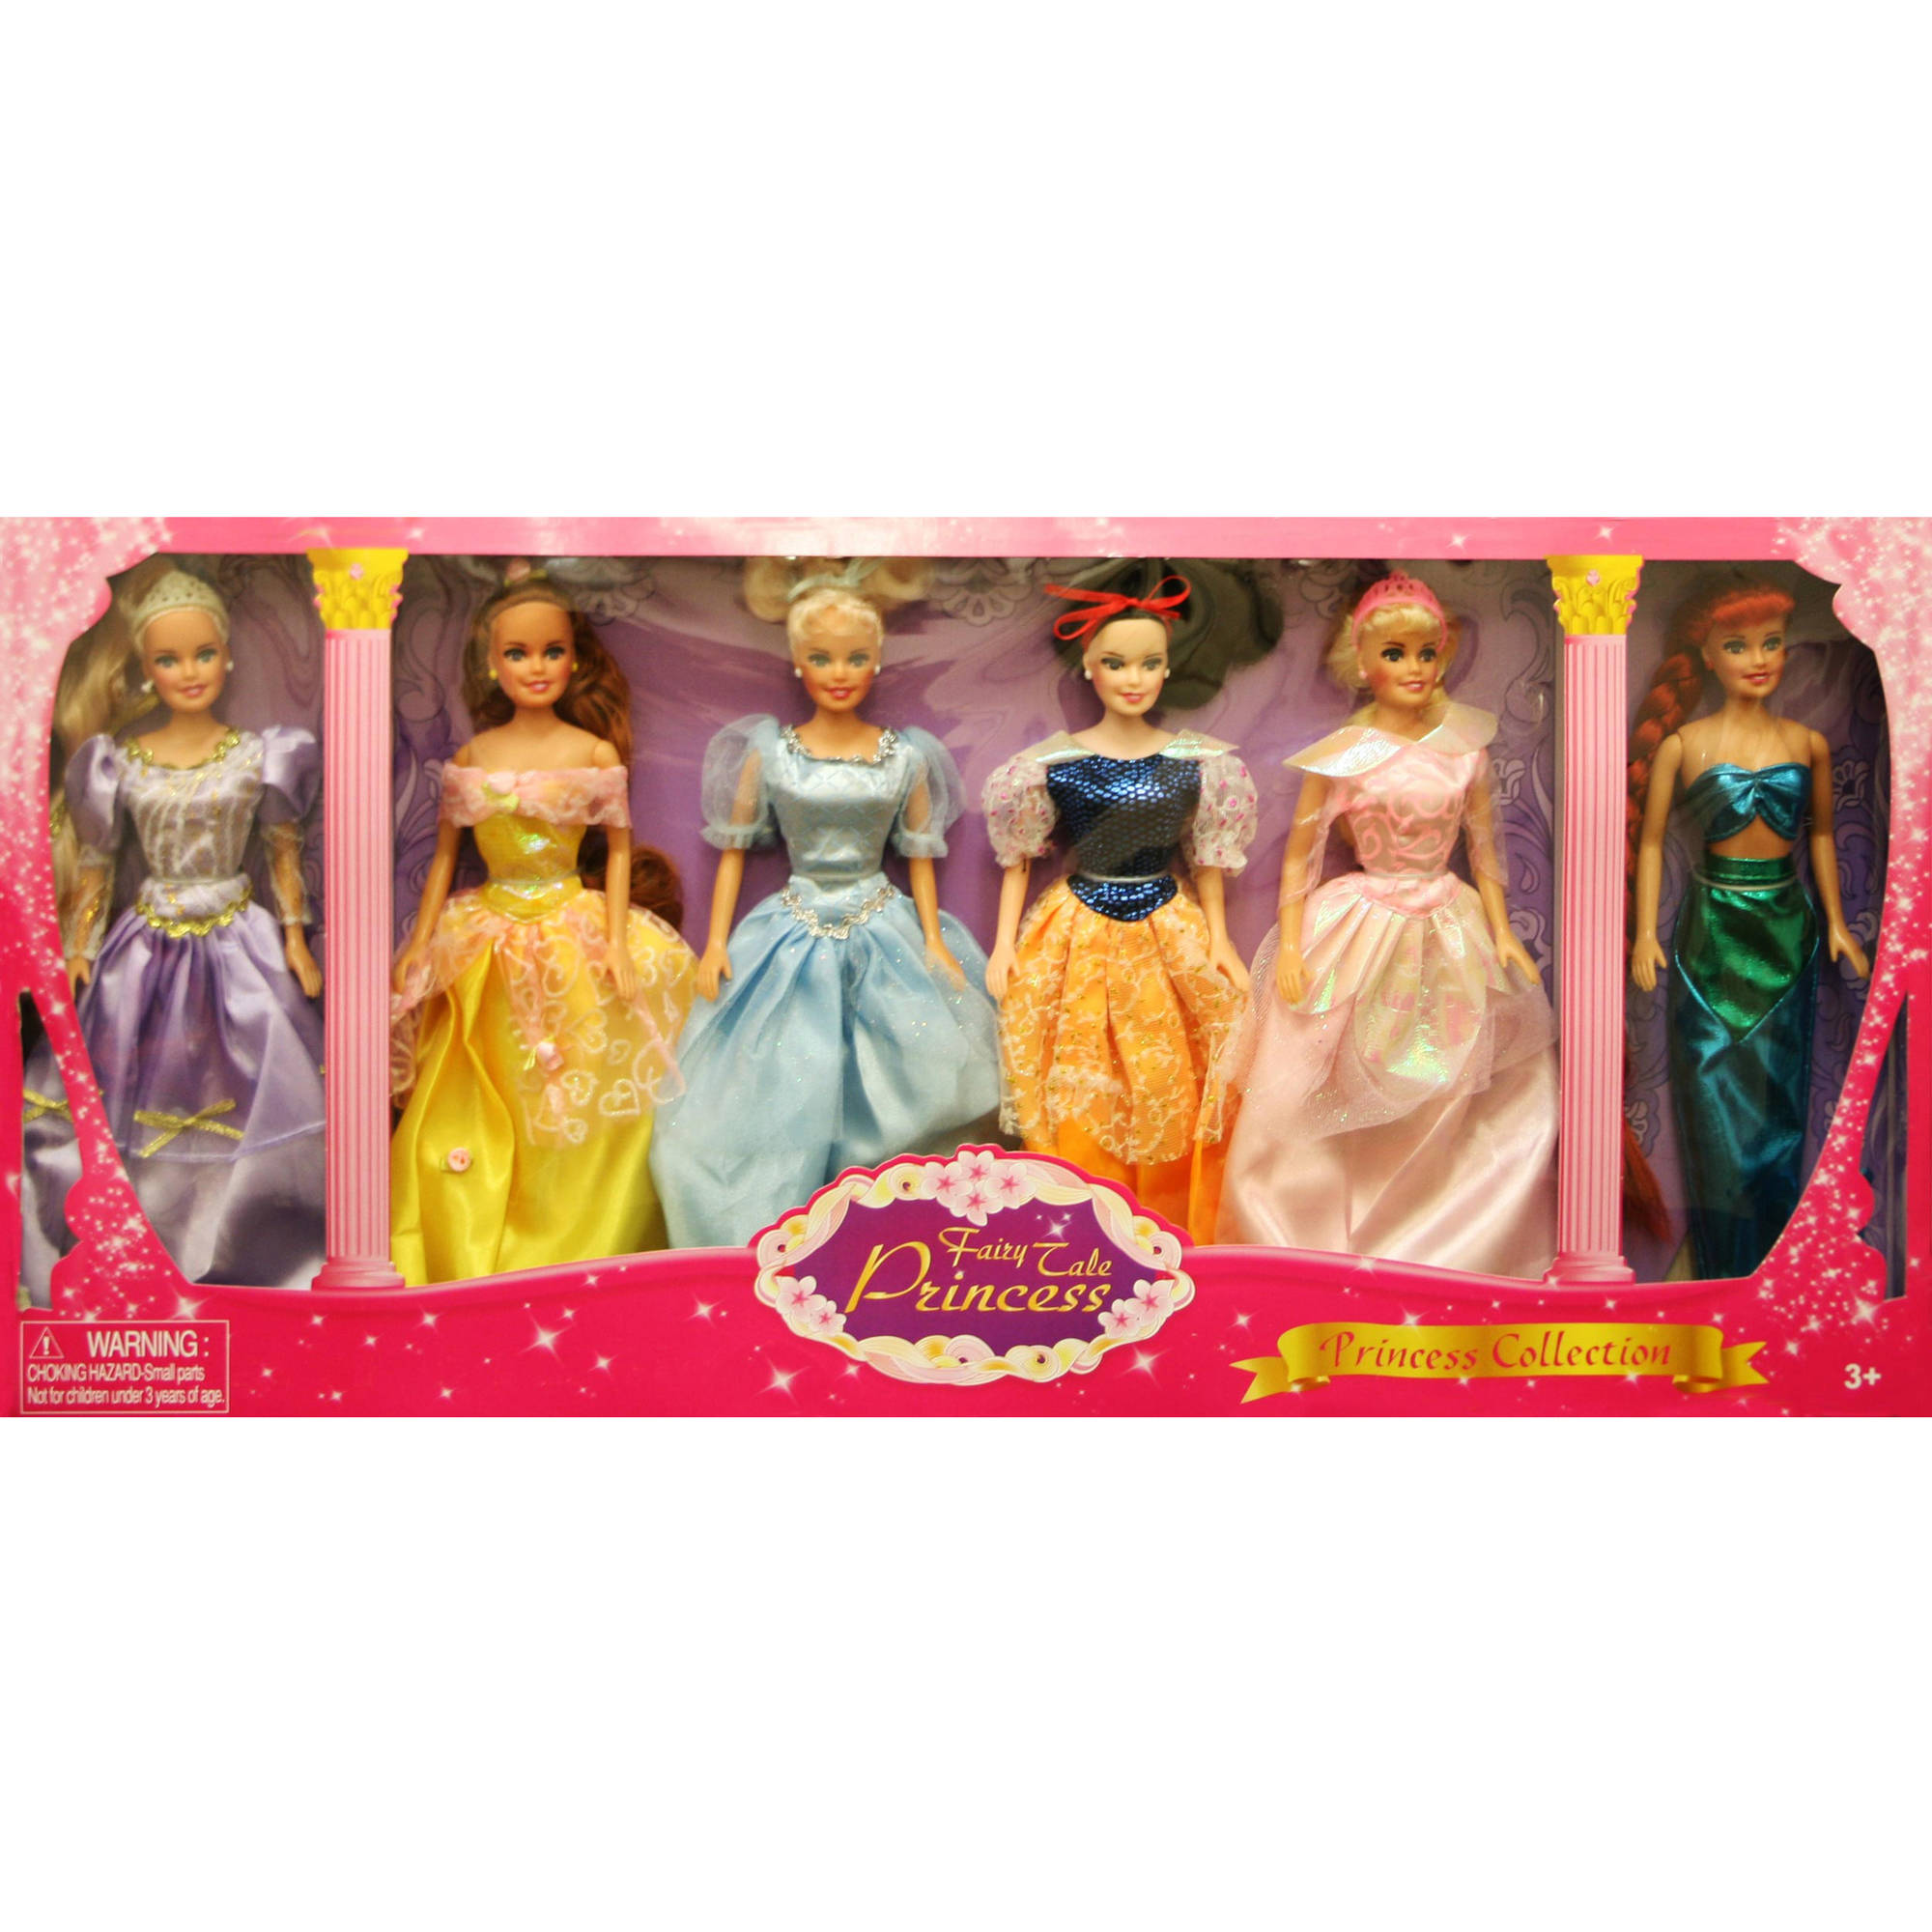 Princess Gift Set Doll, 6-Pack, 11.5""